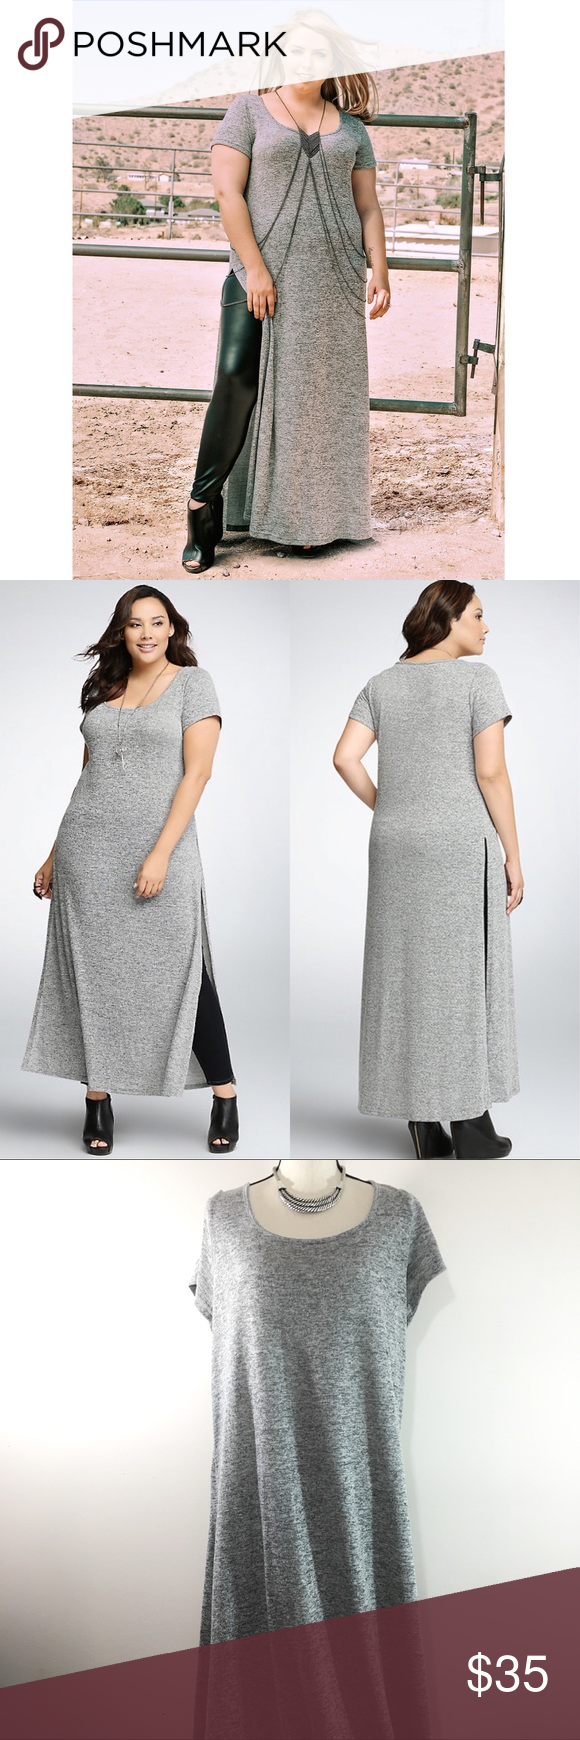 🏳 NWOT TORRID Side Slit Gray Maxi Tunic Dress | Gray maxi, Torrid ...